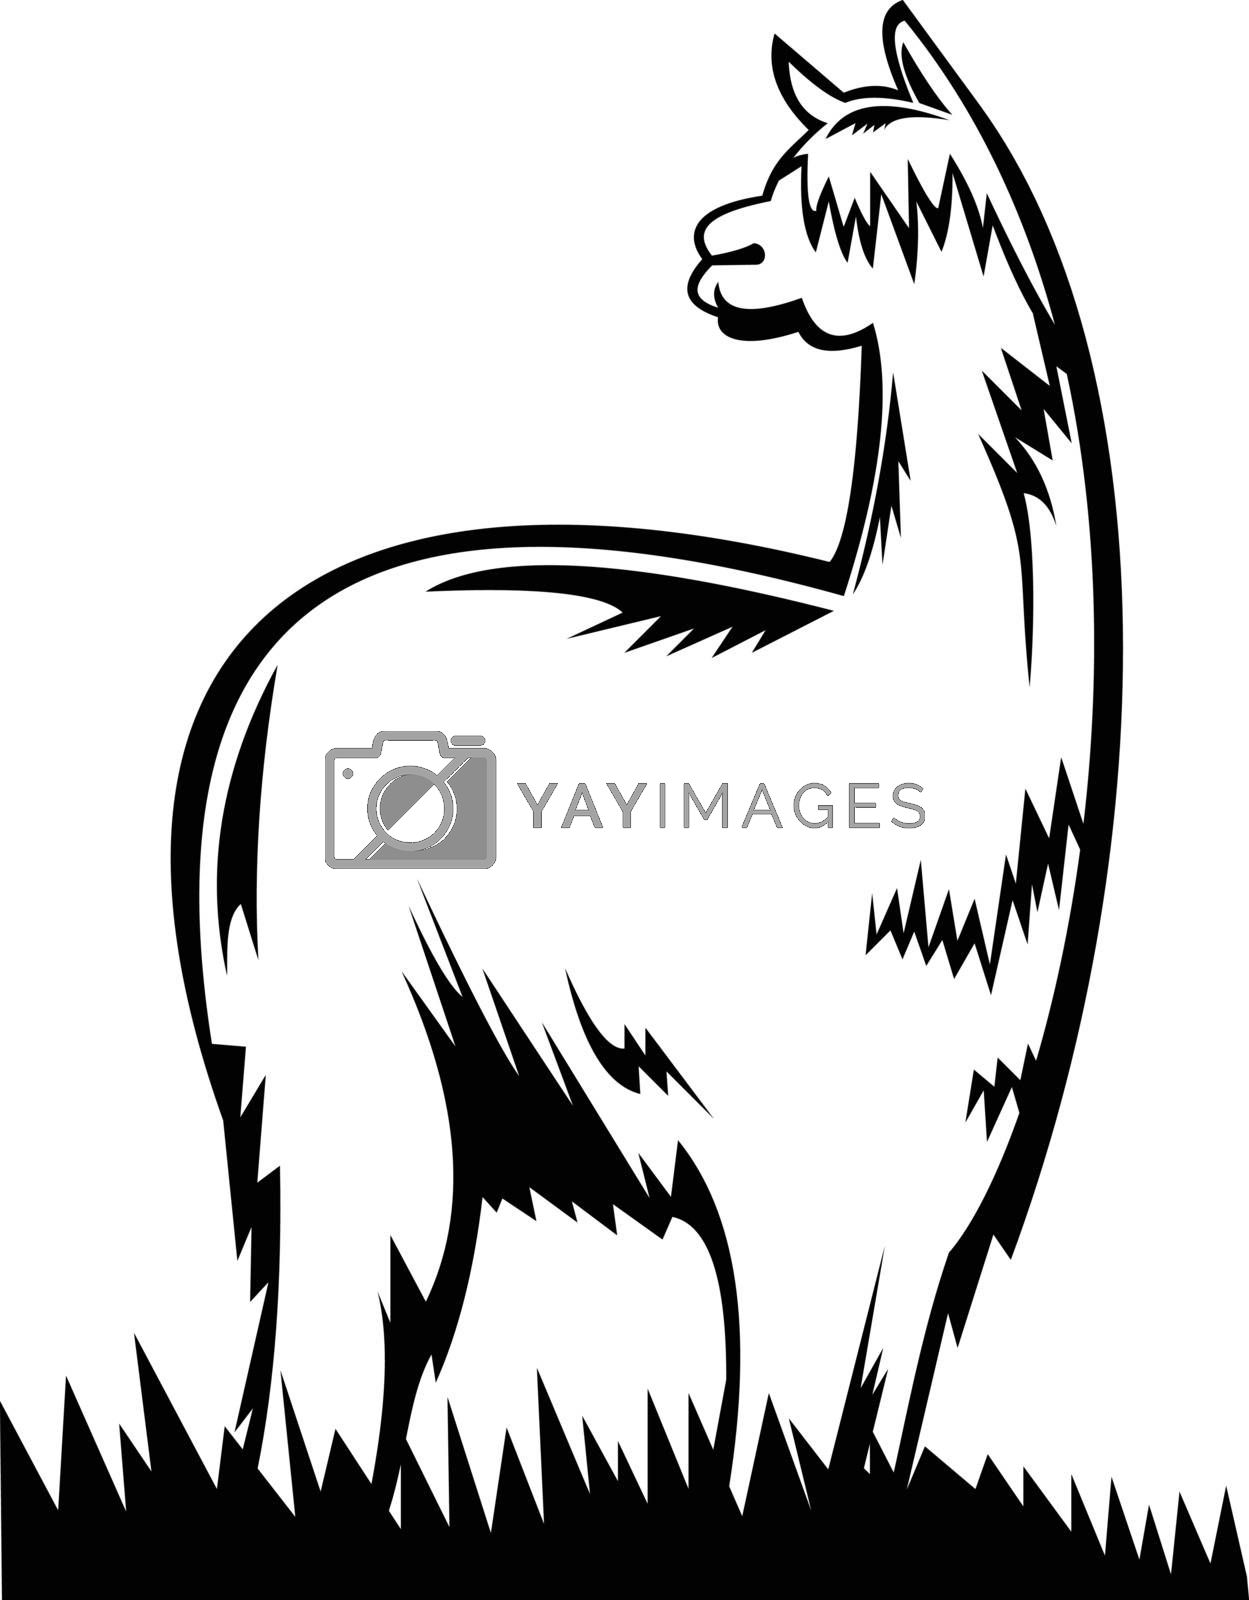 Retro black and white style illustration of a suri alpaca or huacaya one of the two breeds that make up the species vicugna pacos native to south america, viewed from side on isolated background.